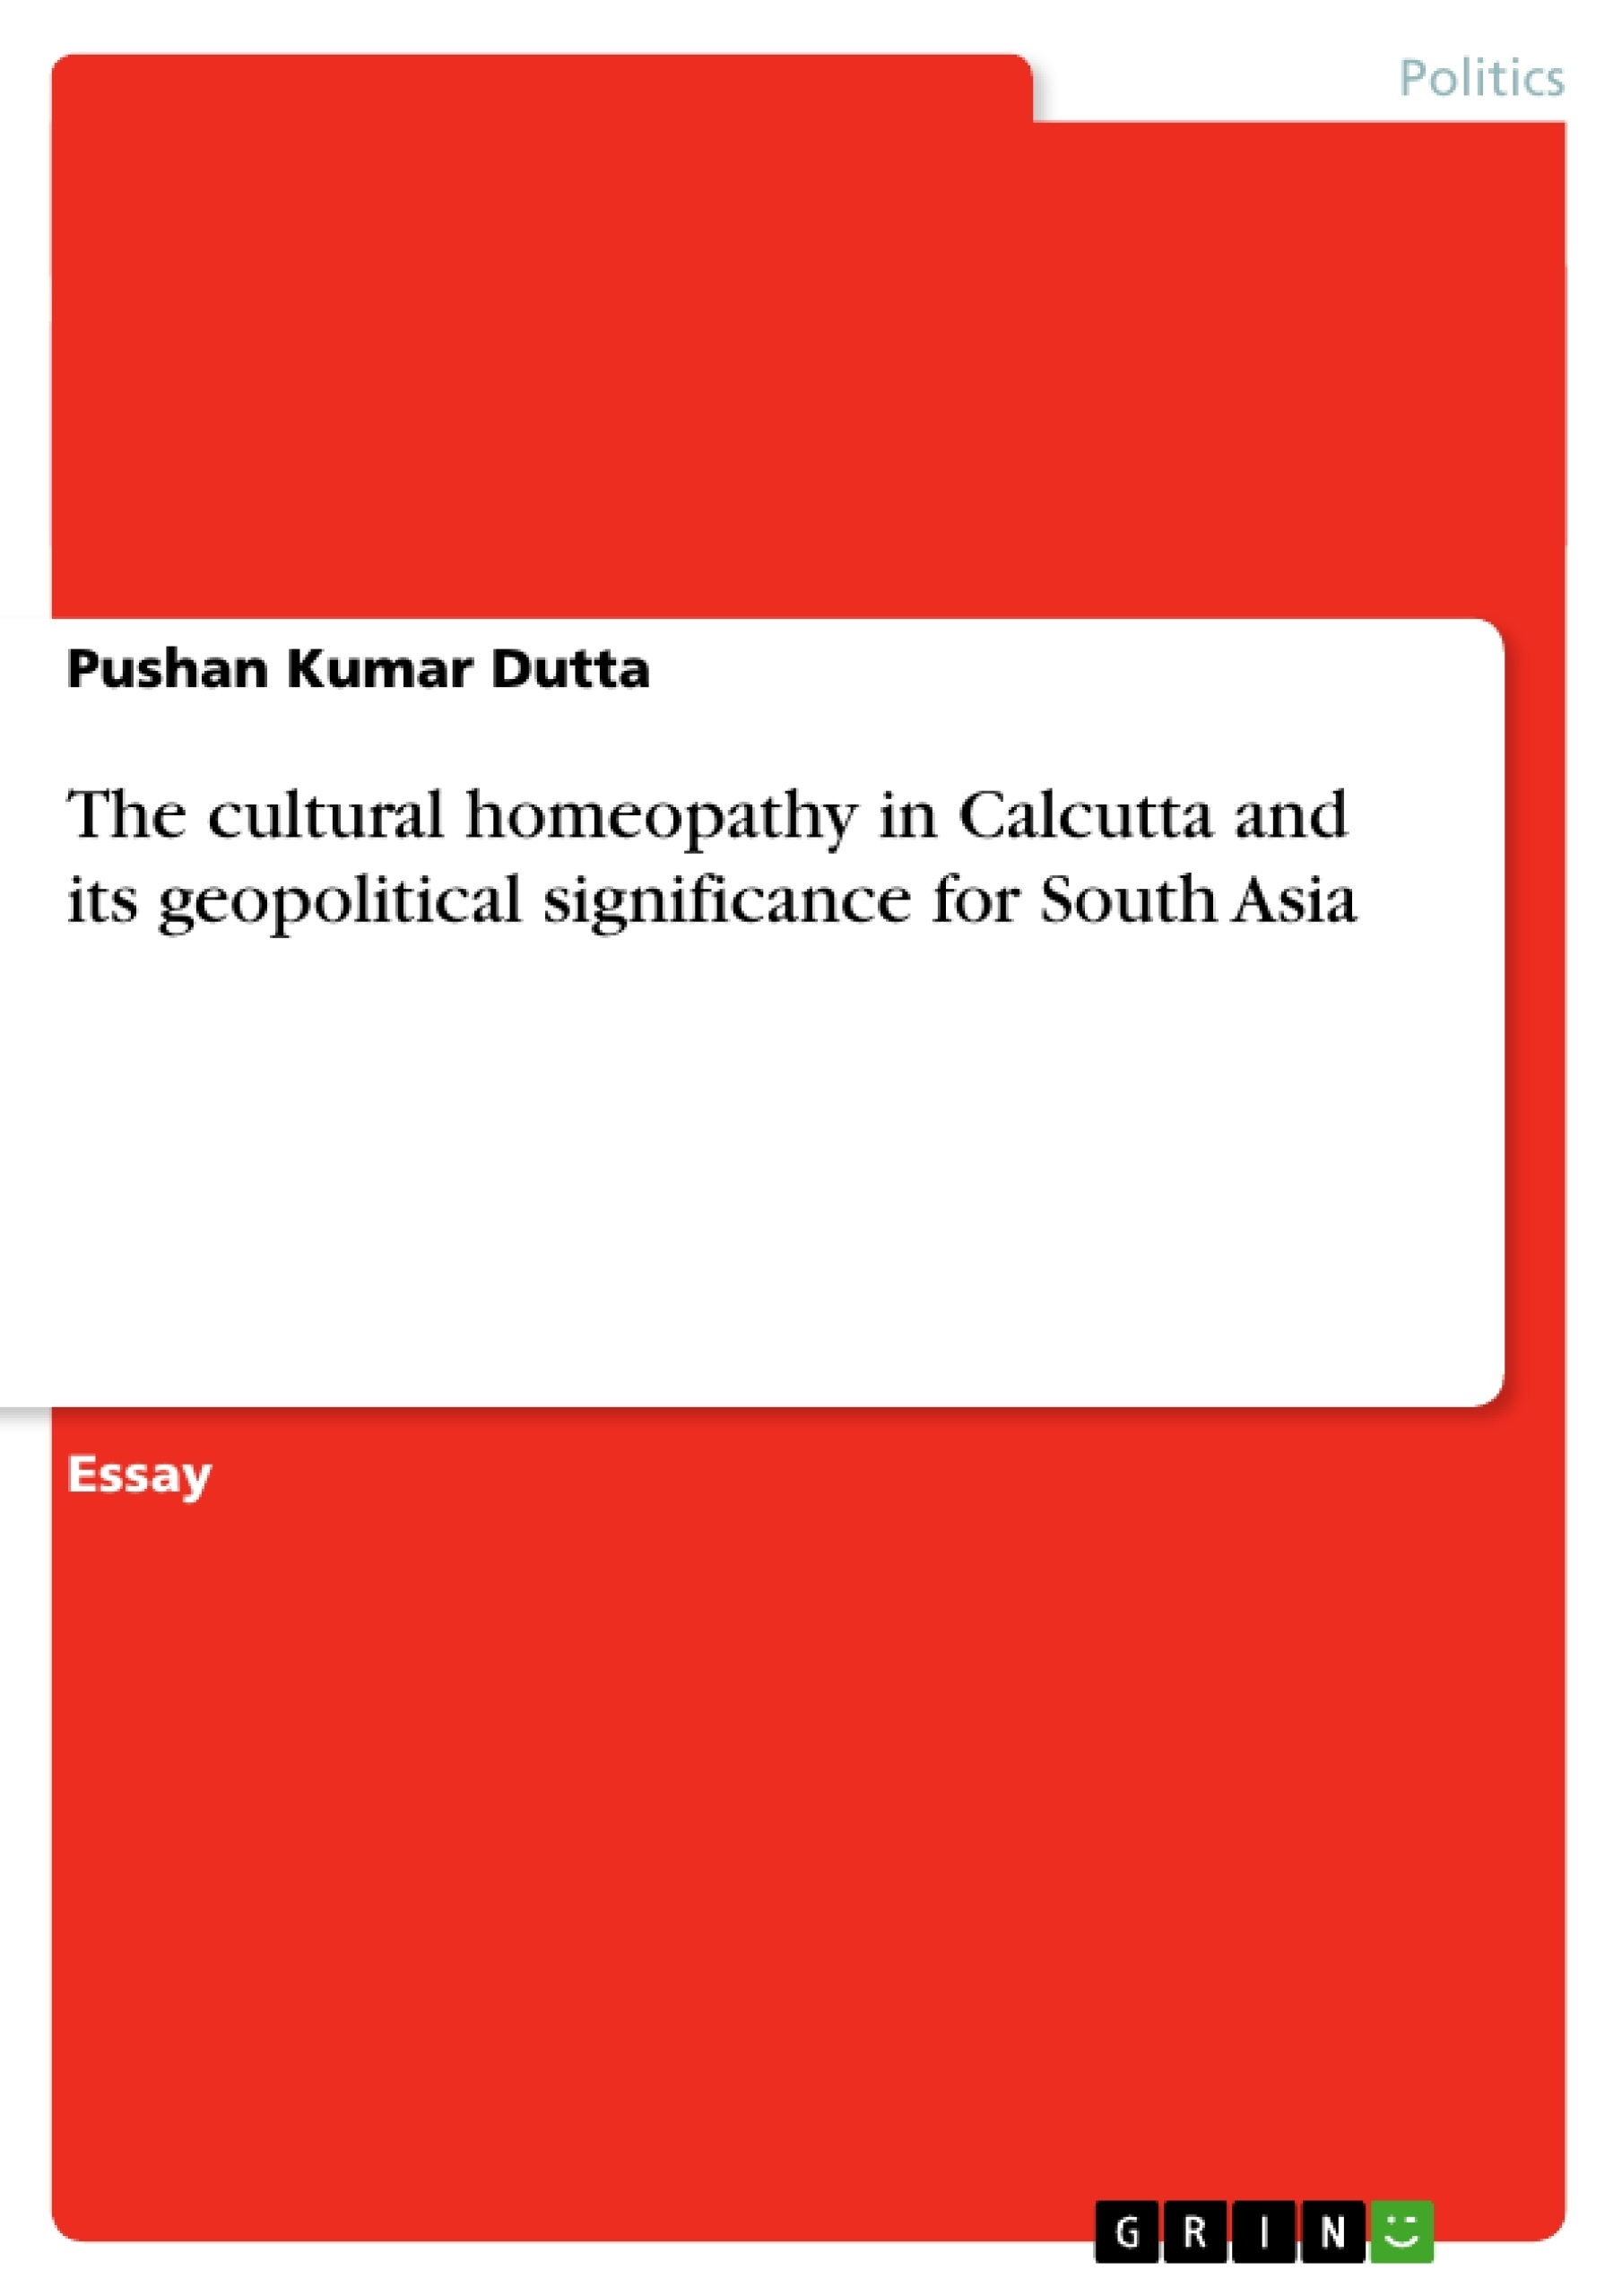 Title: The cultural homeopathy in Calcutta and its geopolitical significance for South Asia